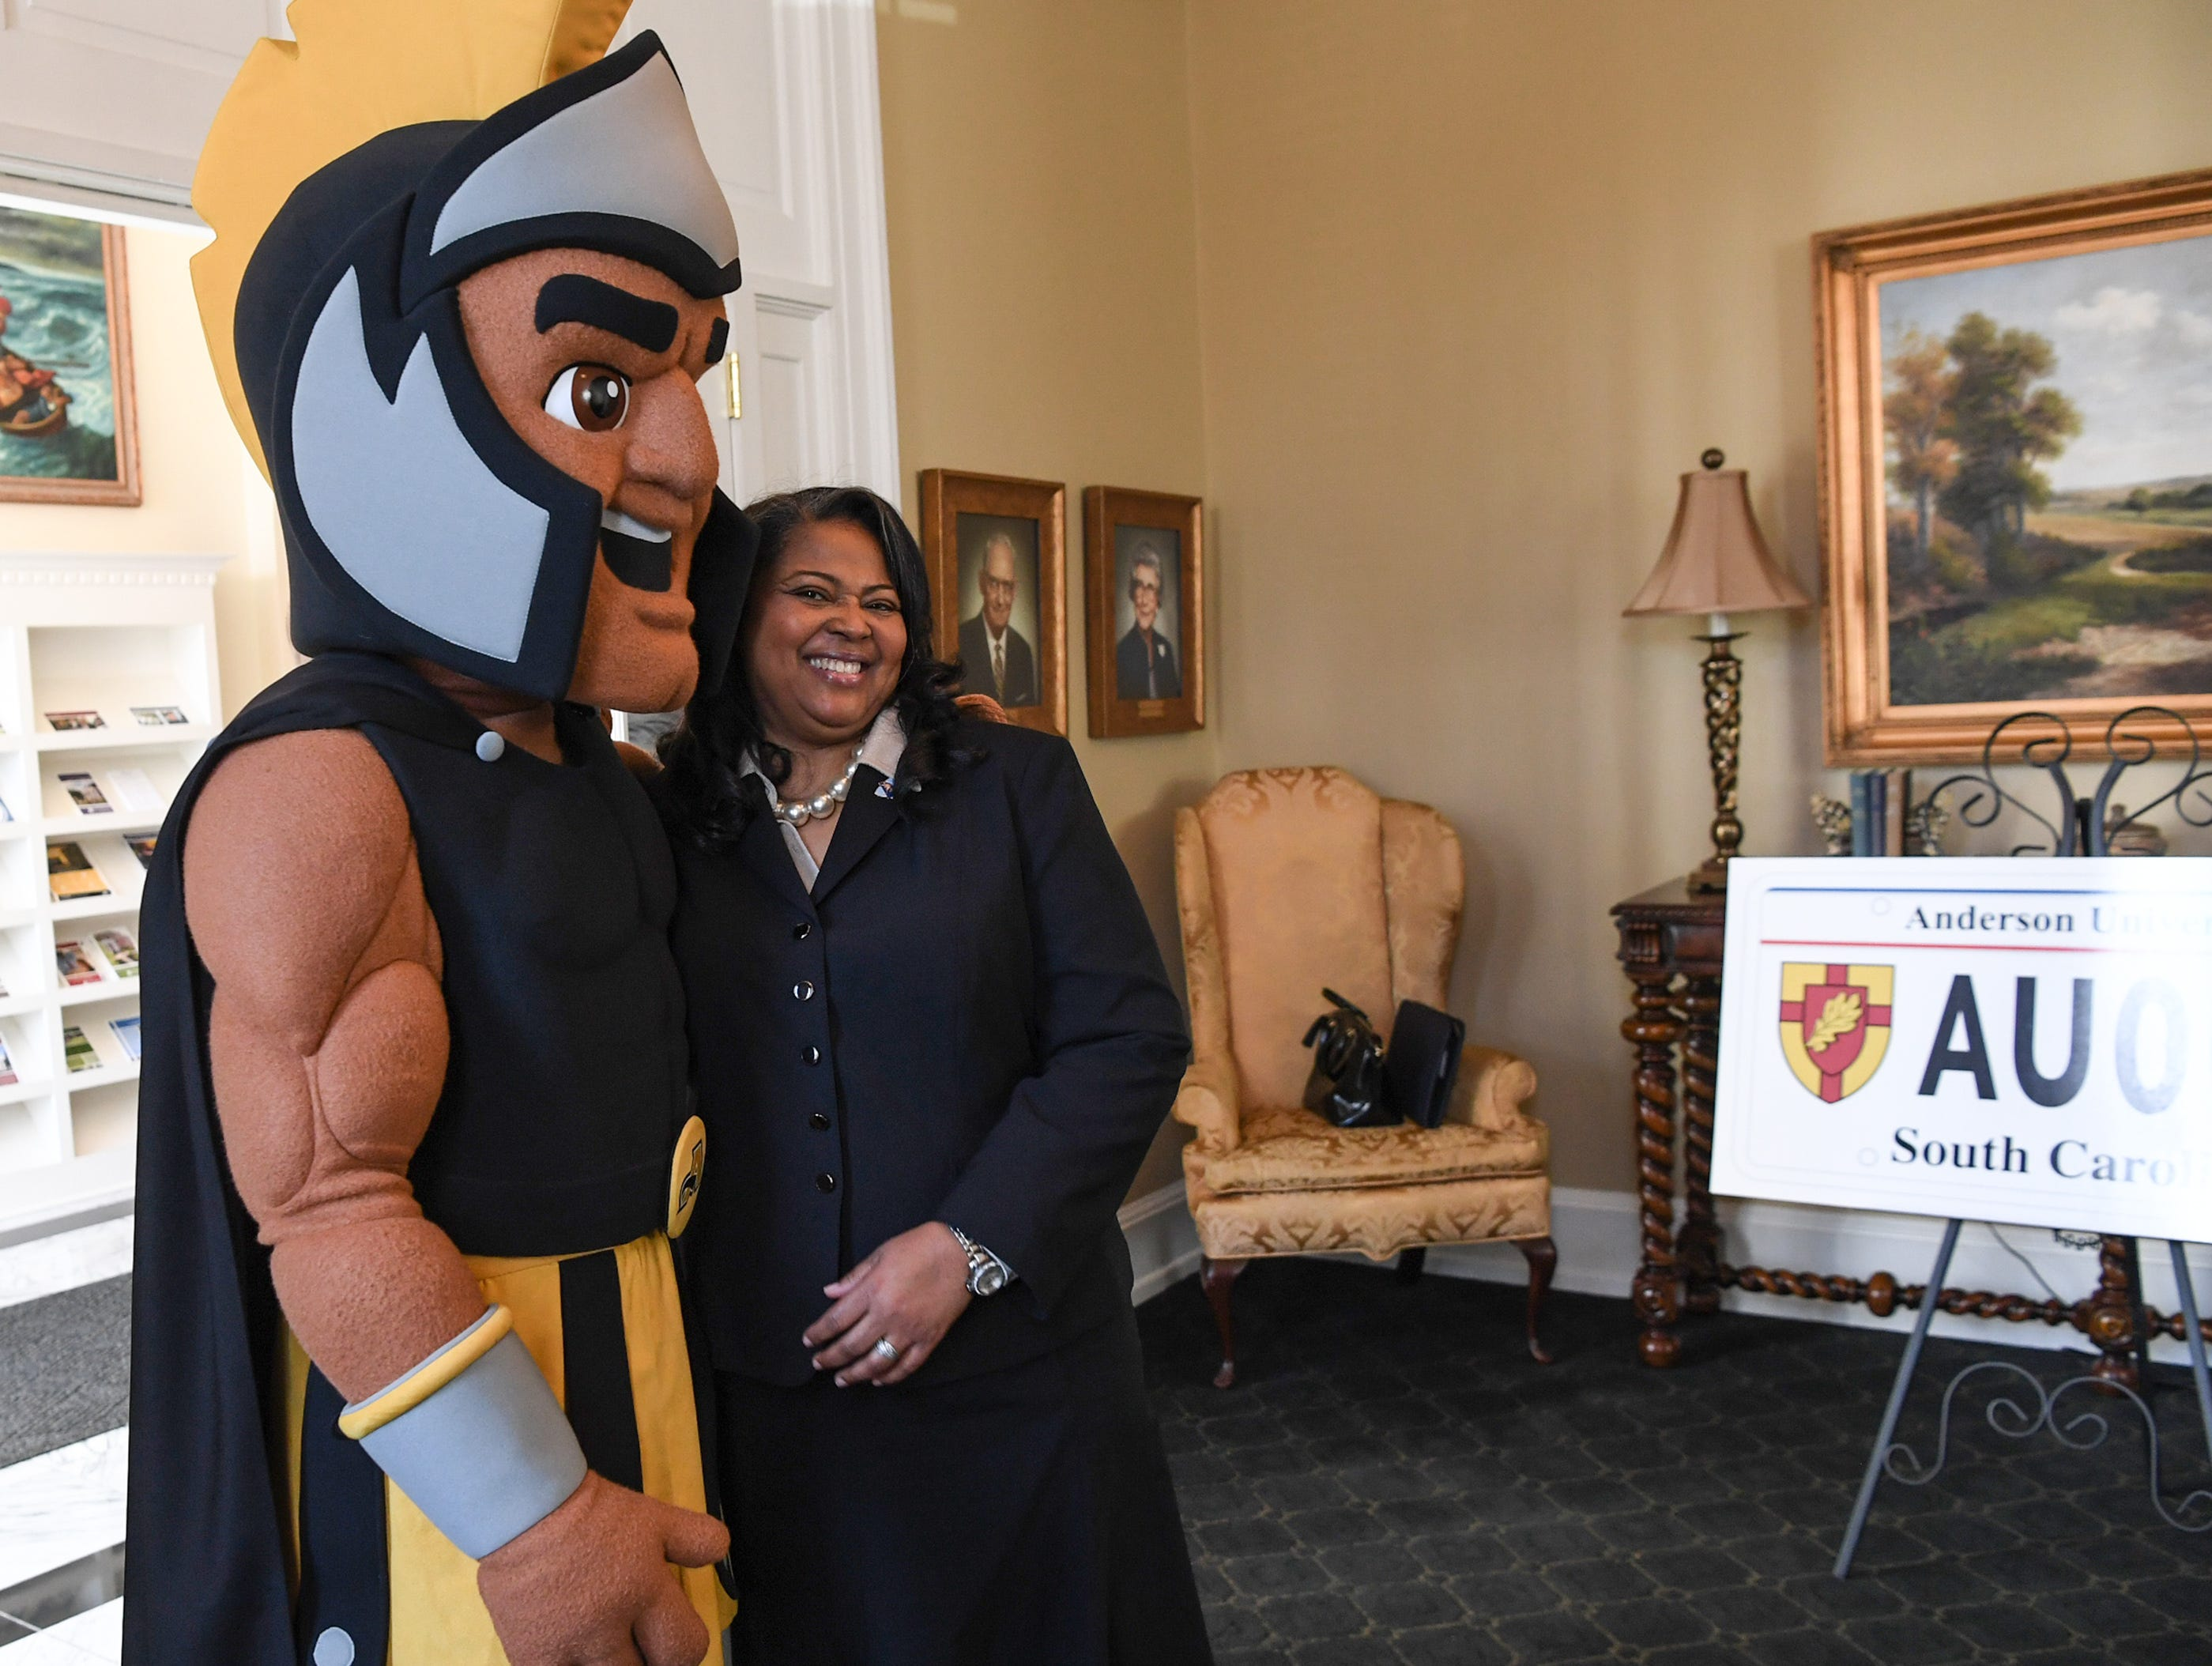 Troy the Trojans mascot of Anderson University stands for a photo with Hermena Perkins-Brown, right, plate office director of the South Carolina Department of Motor Vehicles, before showing other officials a new personalized license plate during a press conference at the campus administration building in Anderson Friday morning. The University plate, along with Clemson University and the University of South Carolina, are the only college or university plates available to personalize, said Perkins-Brown. The Anderson University plates can be applied for starting Monday, January 28, 2019 in person, not online, for $100 and an added fee if personalizing.